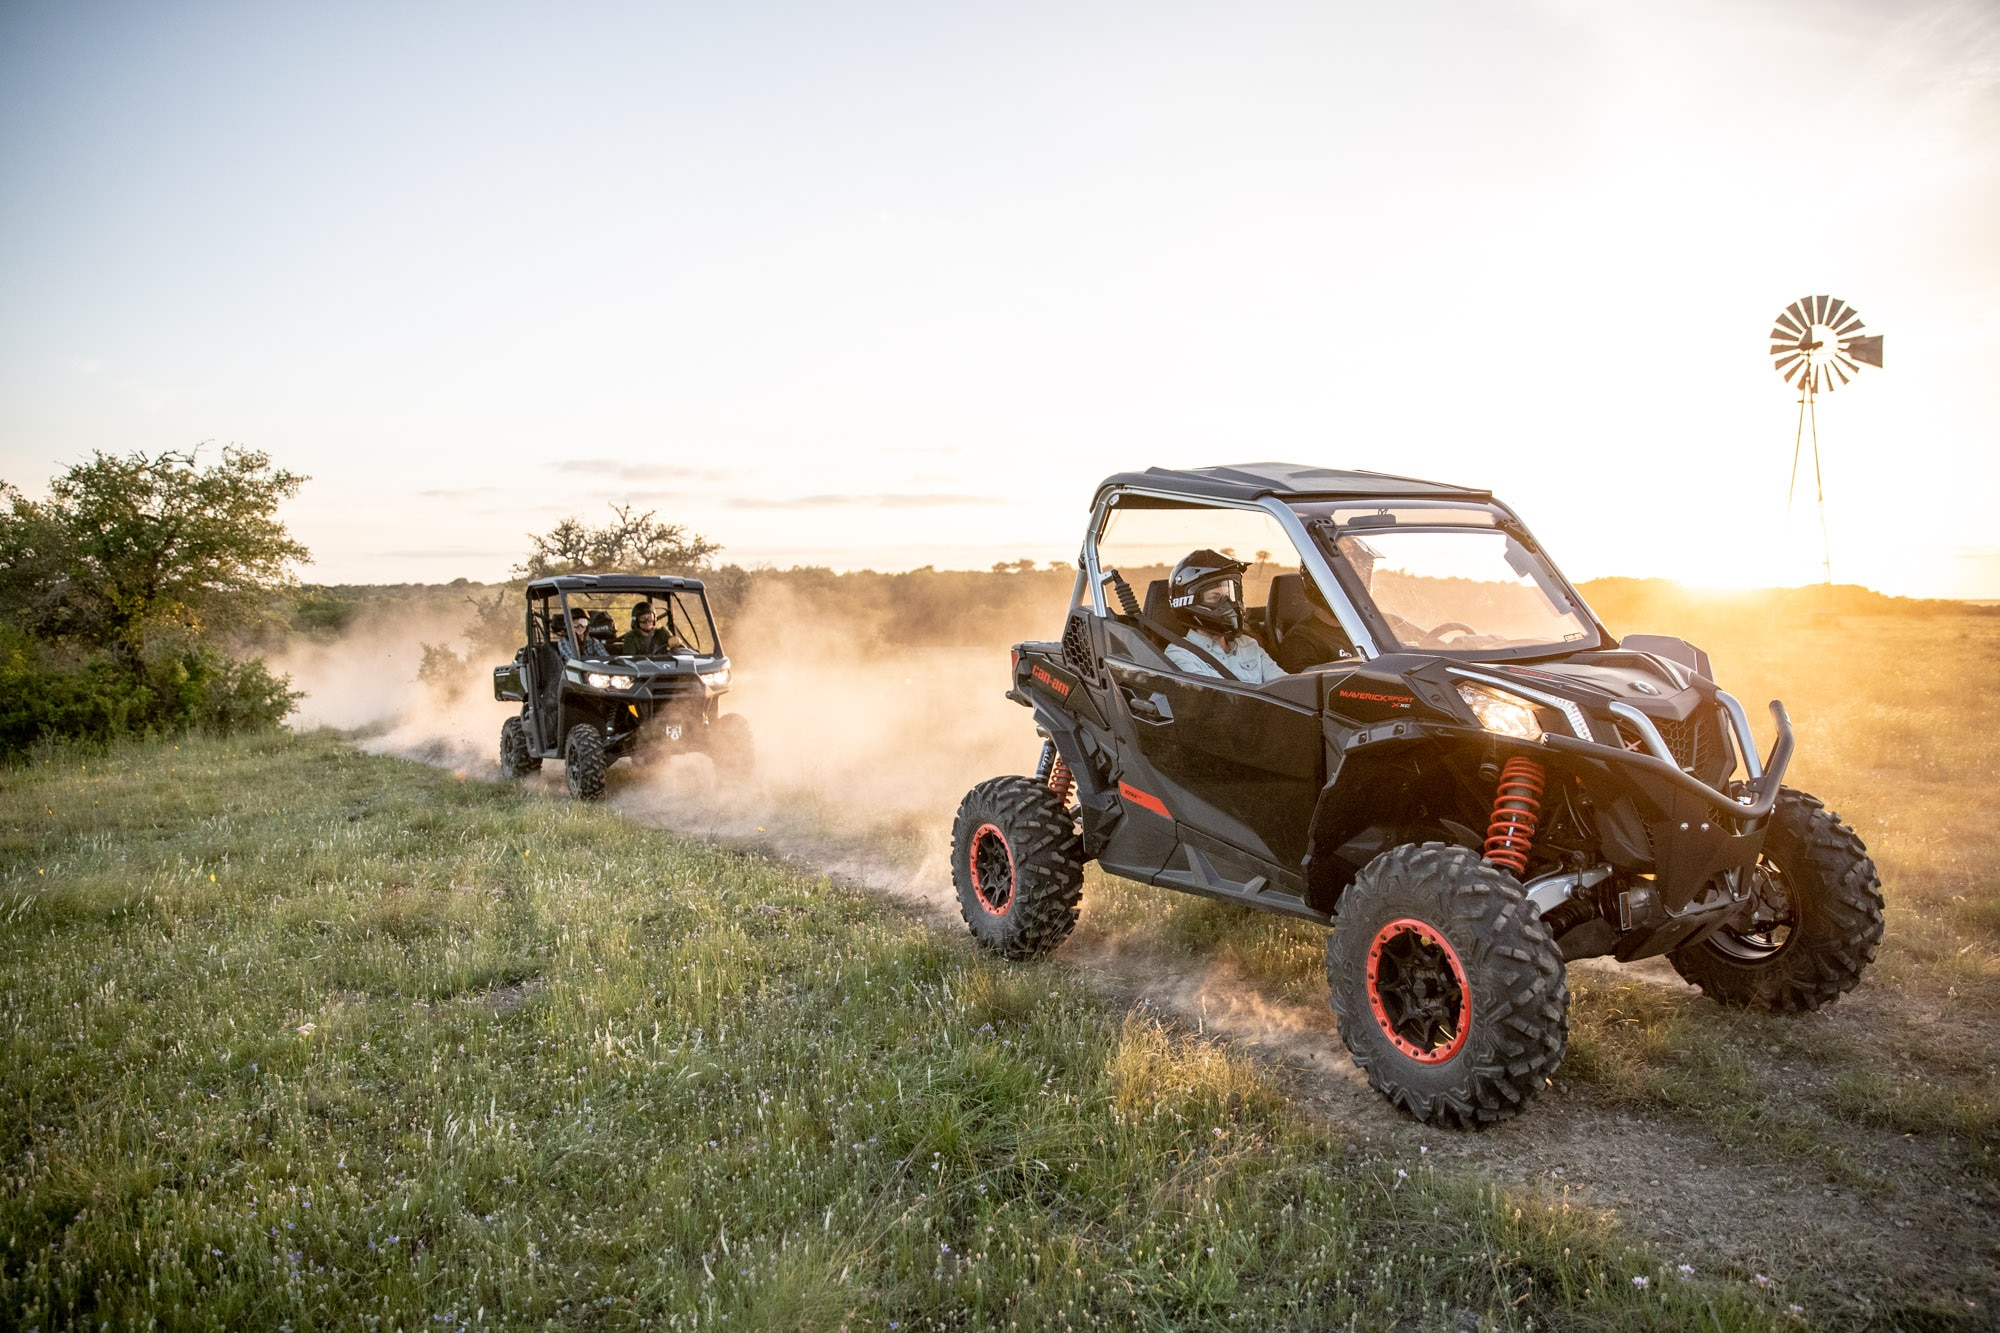 Group riding Can-Am Maverick vehicles in a trail at sunset